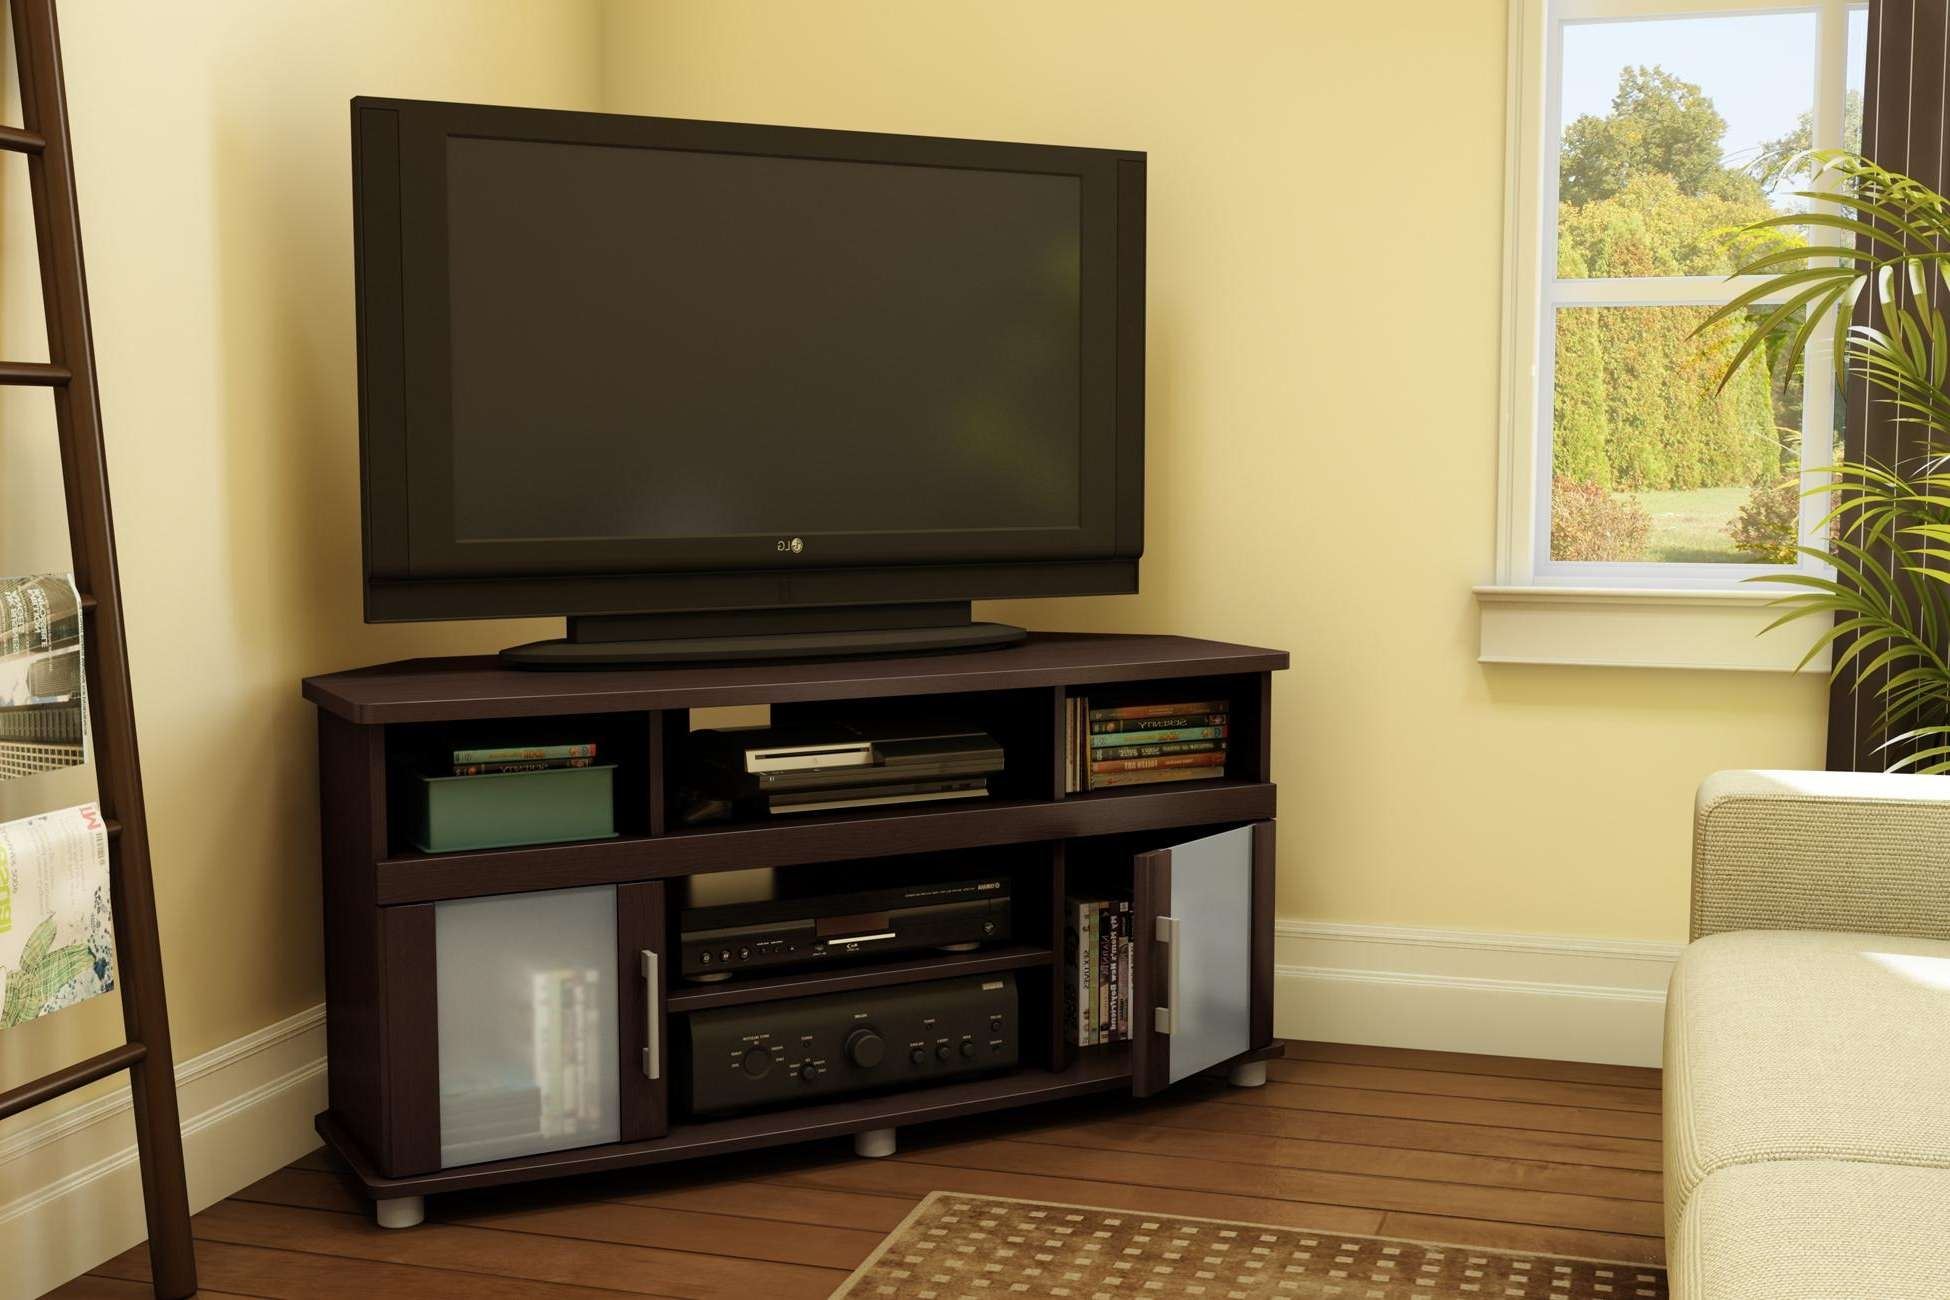 Storage Cabinets Ideas : Corner Tv Stand Glass Choosing The Sizes With Regard To Corner Tv Cabinets With Glass Doors (View 9 of 20)